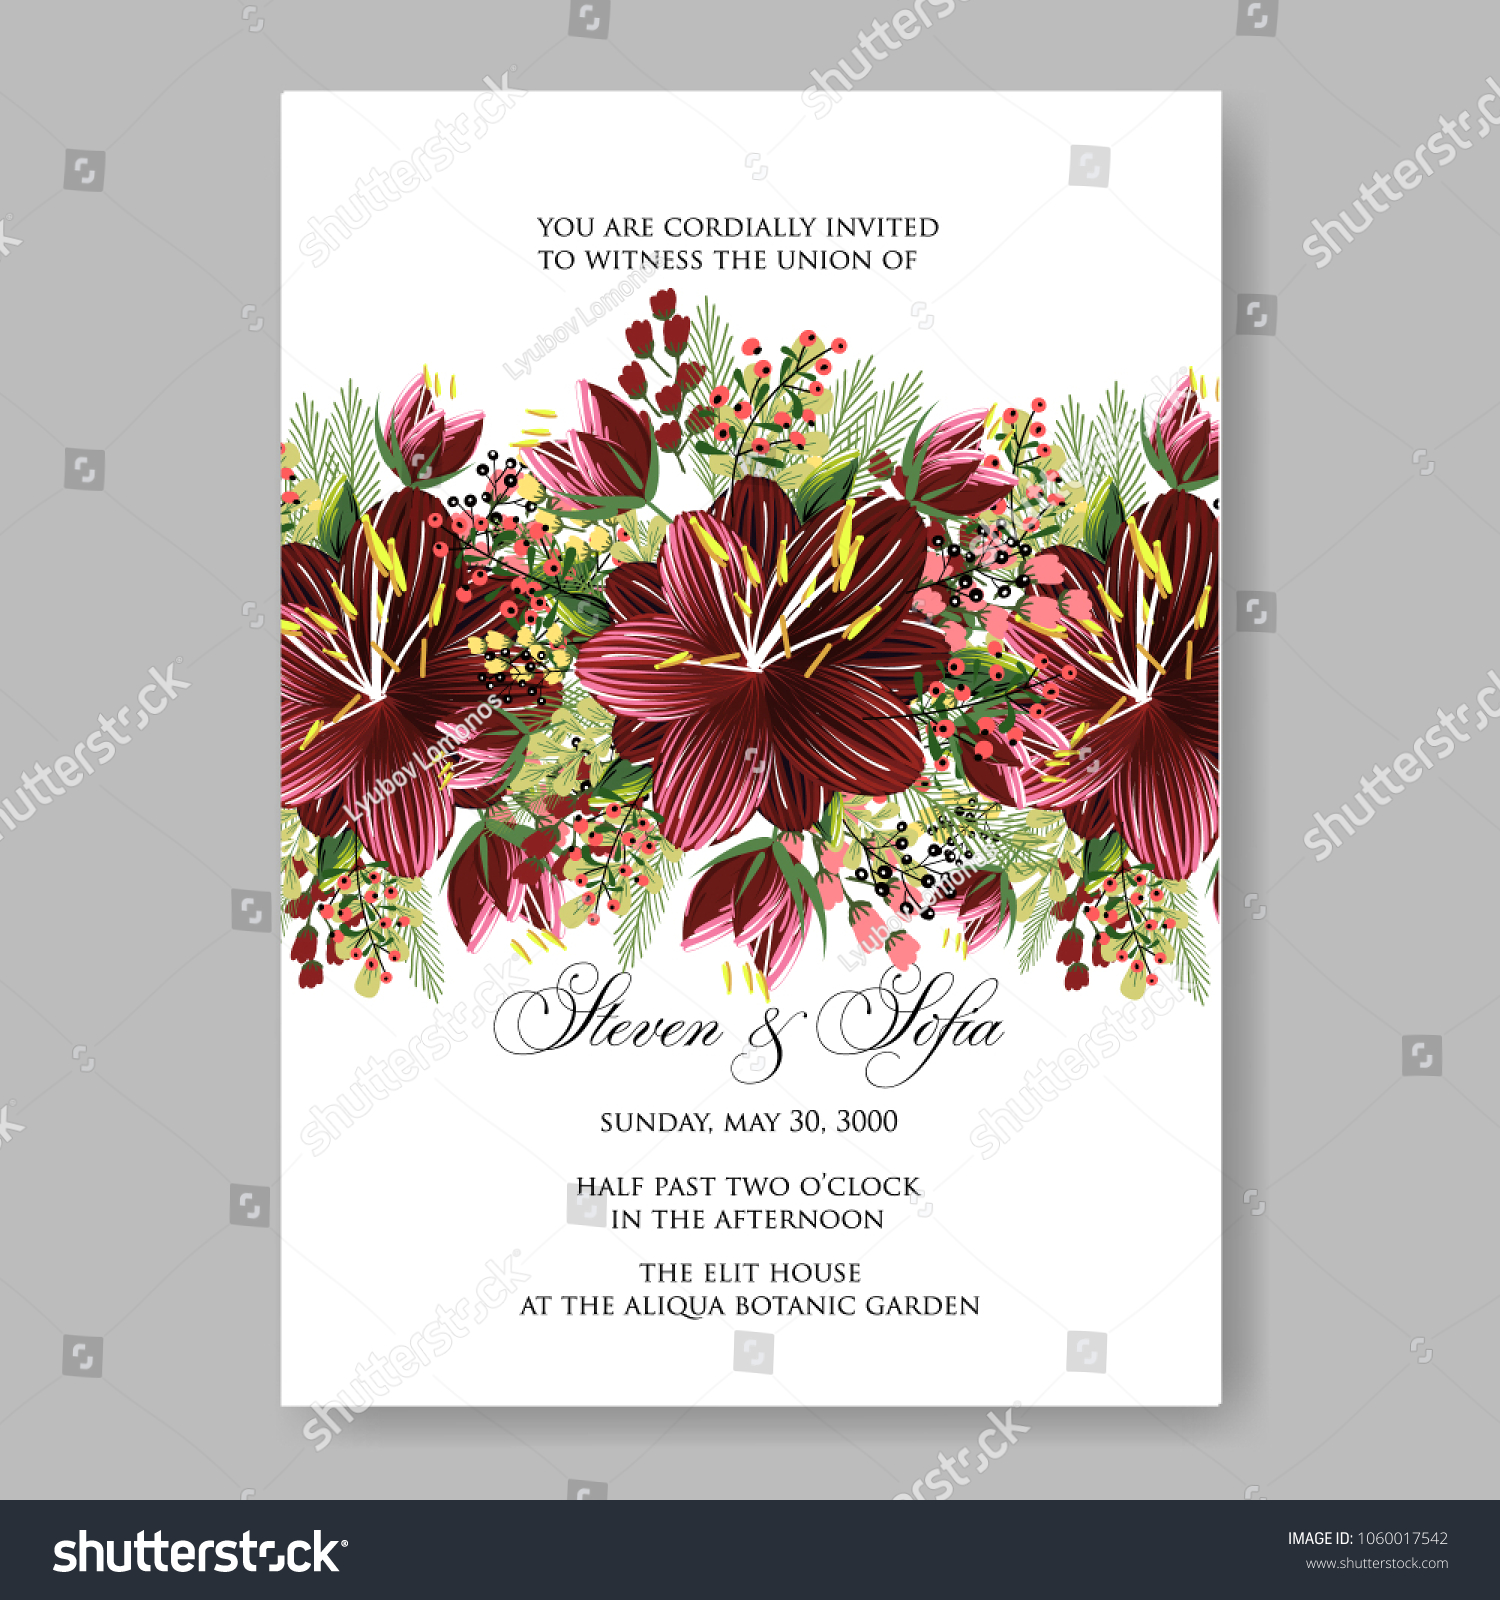 Wedding Invitation Burgundy Color Hibiscus Floral Stock Vector ...